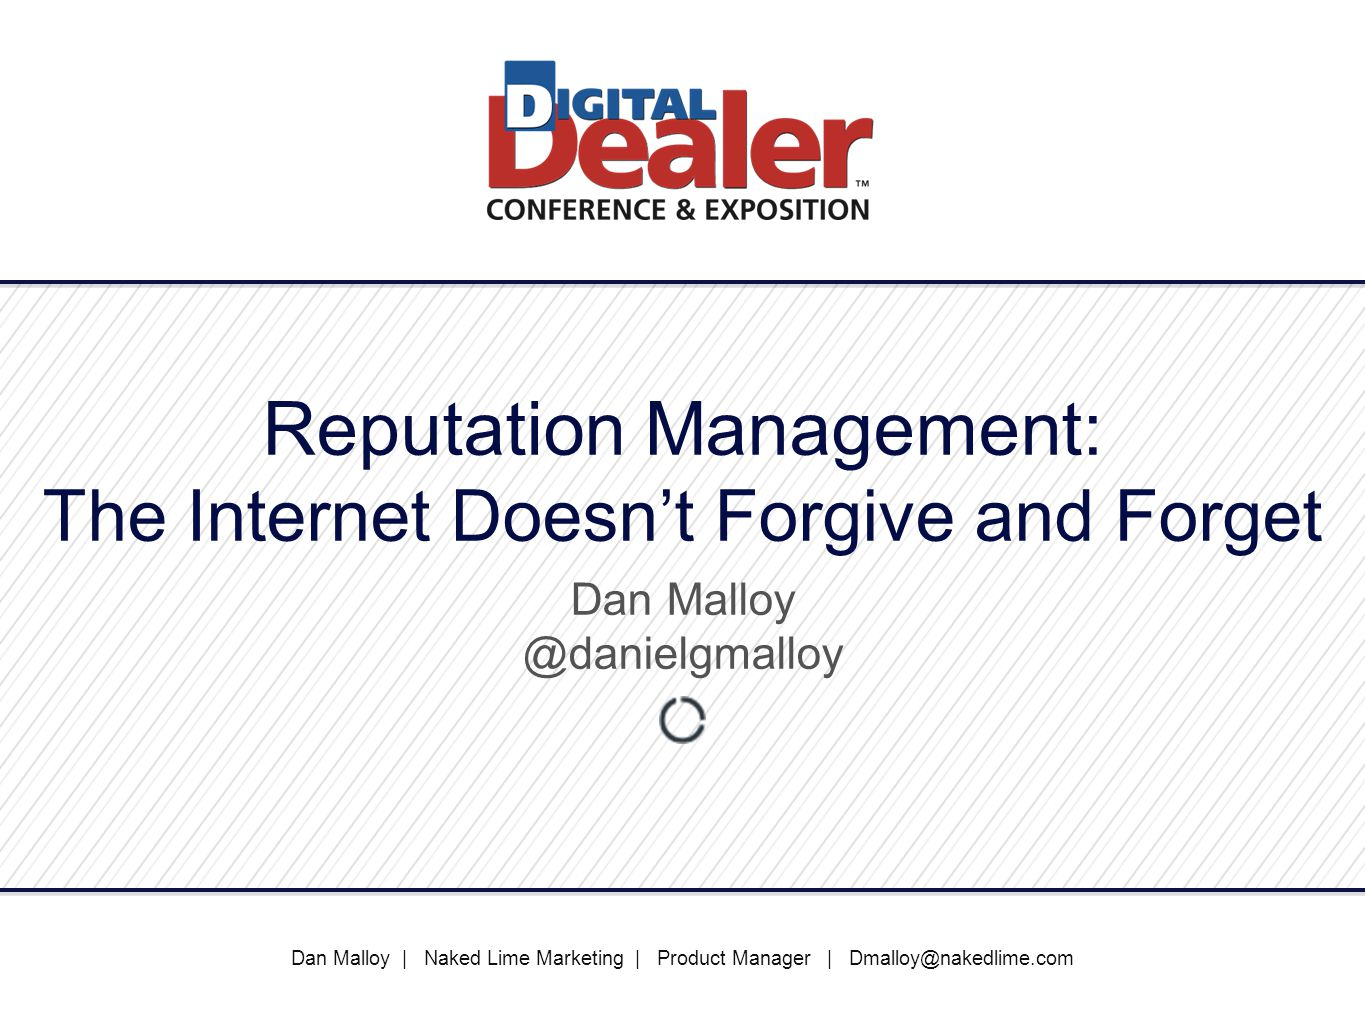 Reputation Management: The Internet Doesn't Forgive and Forget